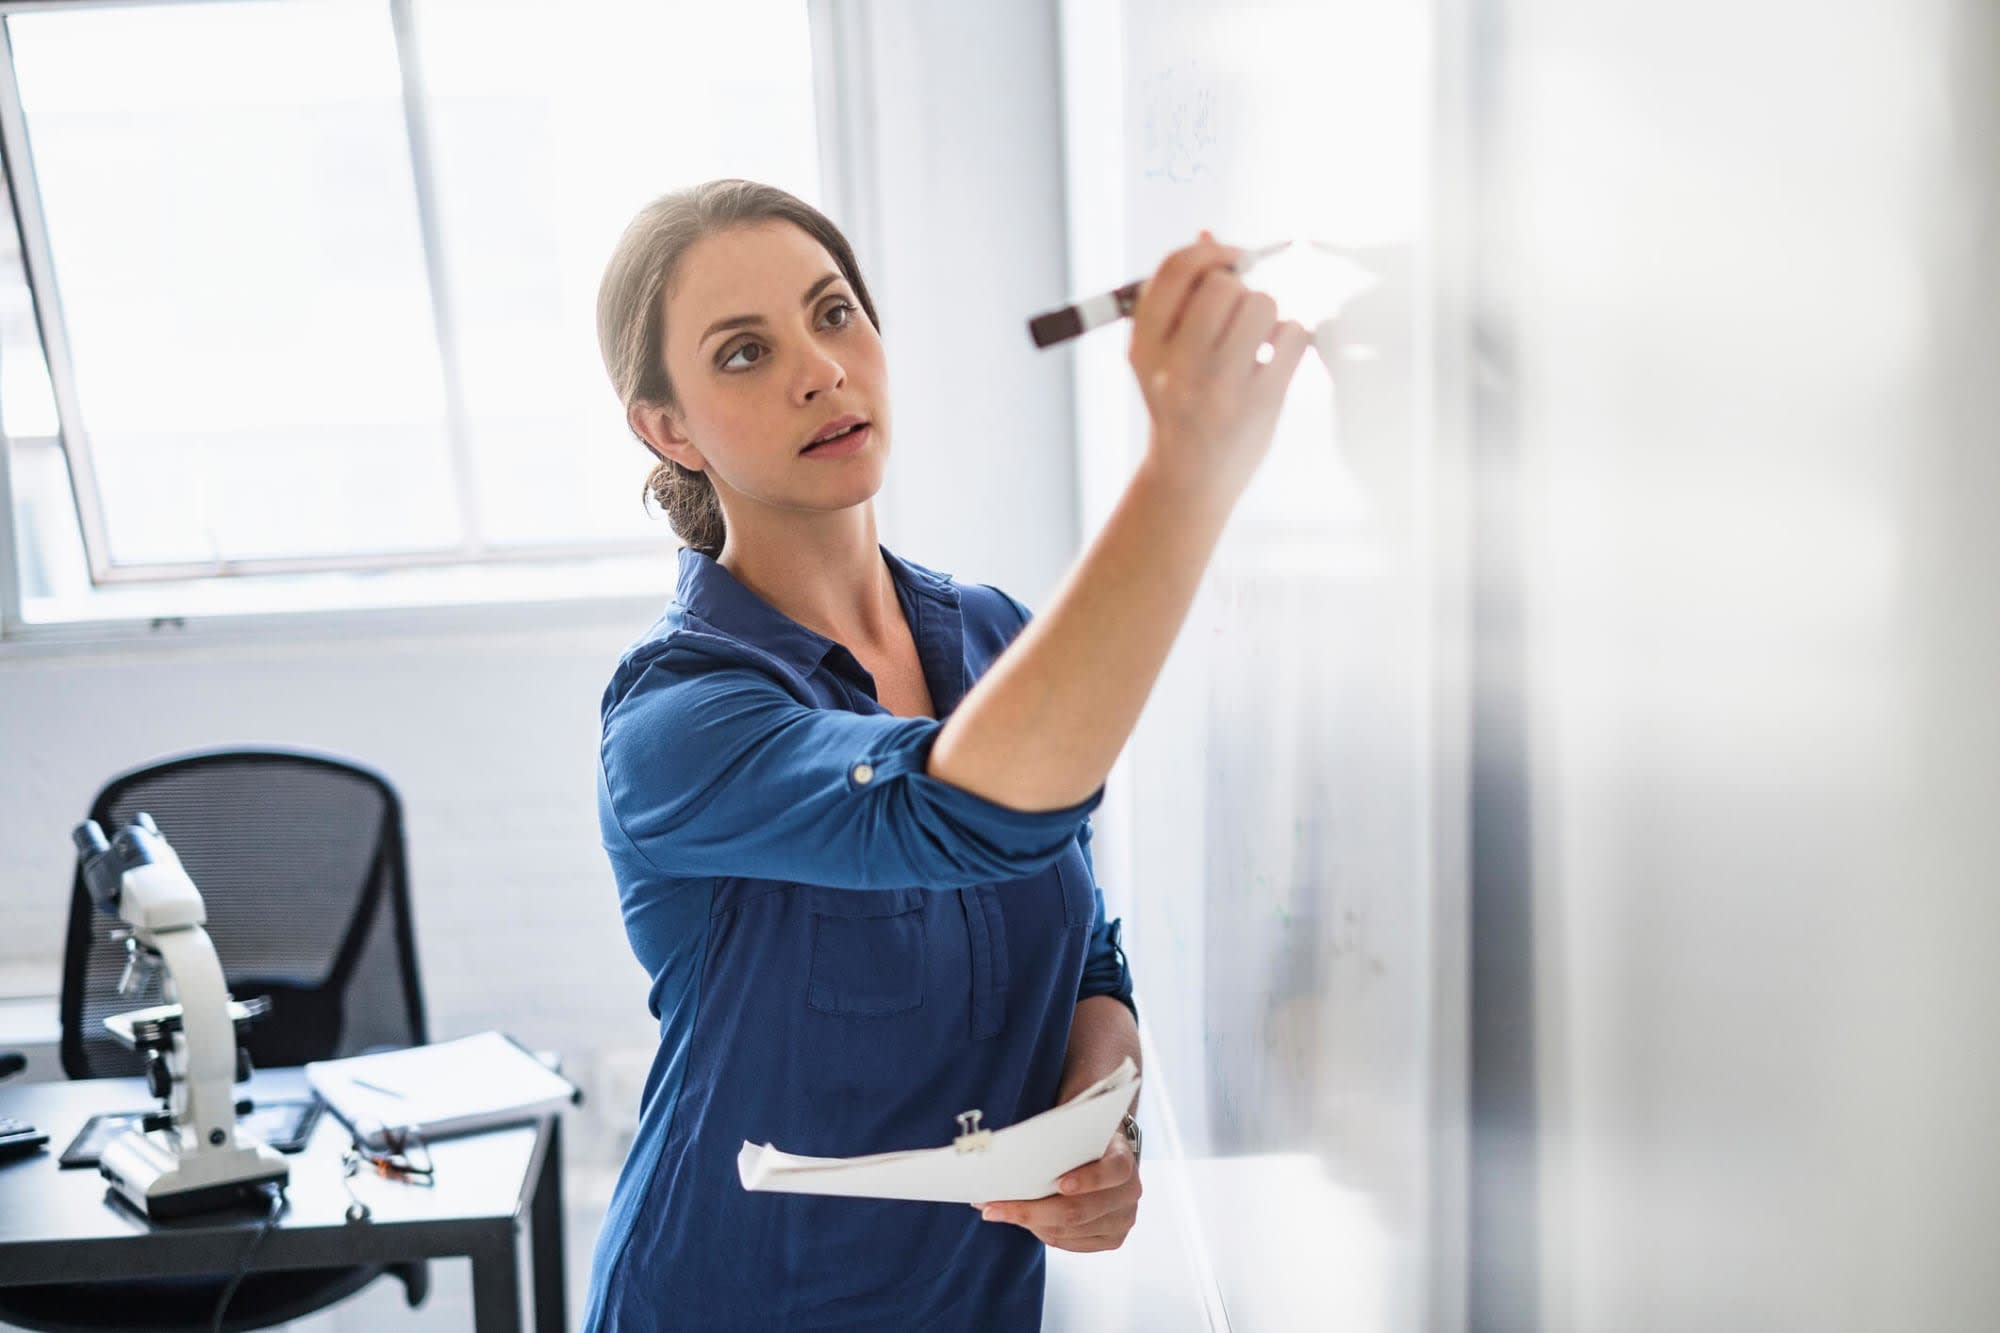 A mid-adult Hispanic female nurse researcher is writing on a whiteboard in her office.